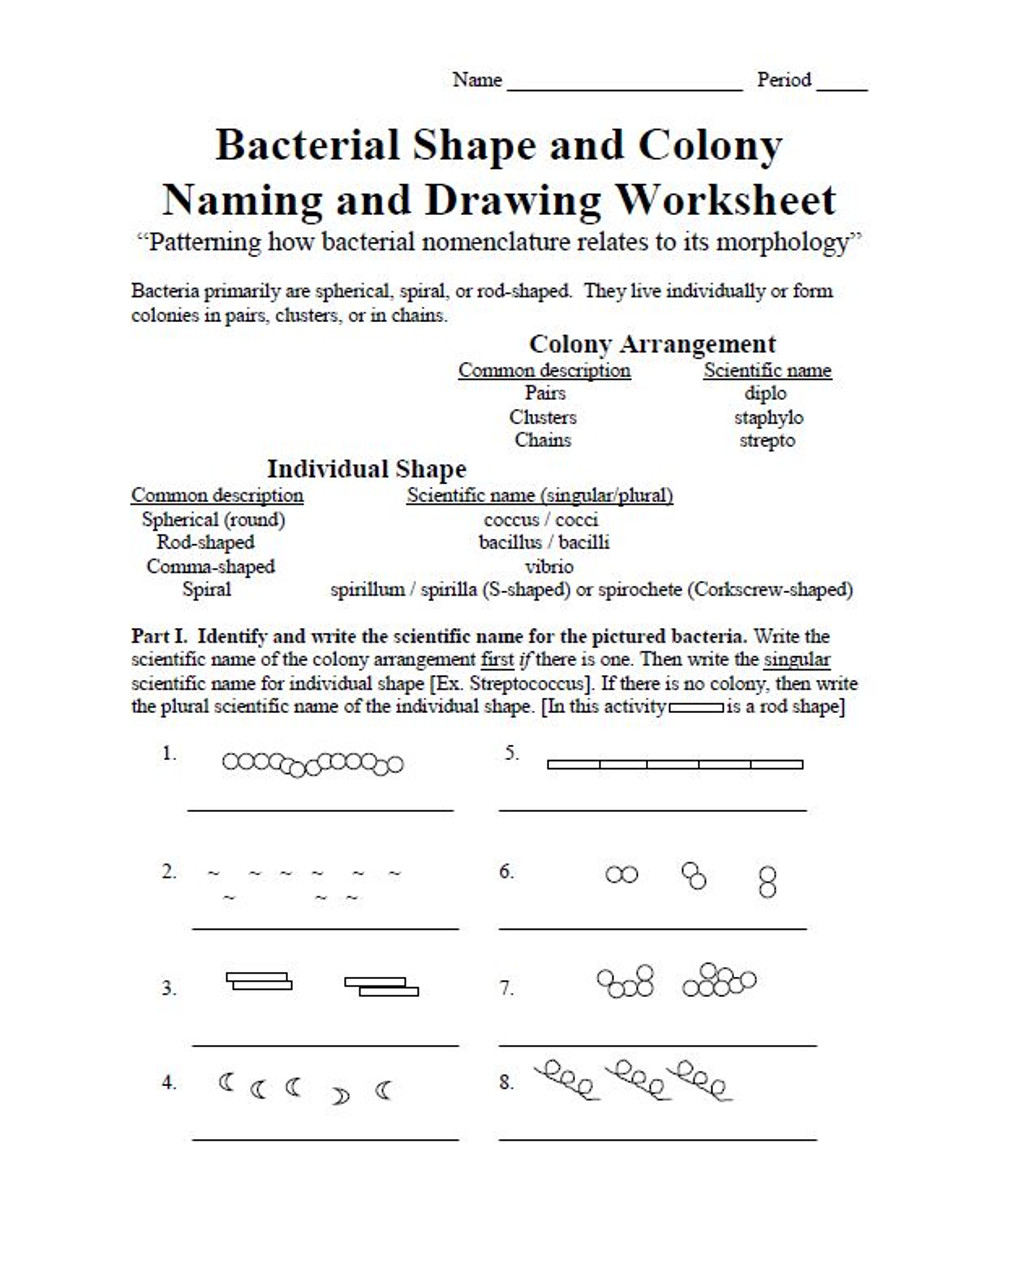 medium resolution of Bacterial Shape and Colony Naming and Drawing Worksheet - Amped Up Learning